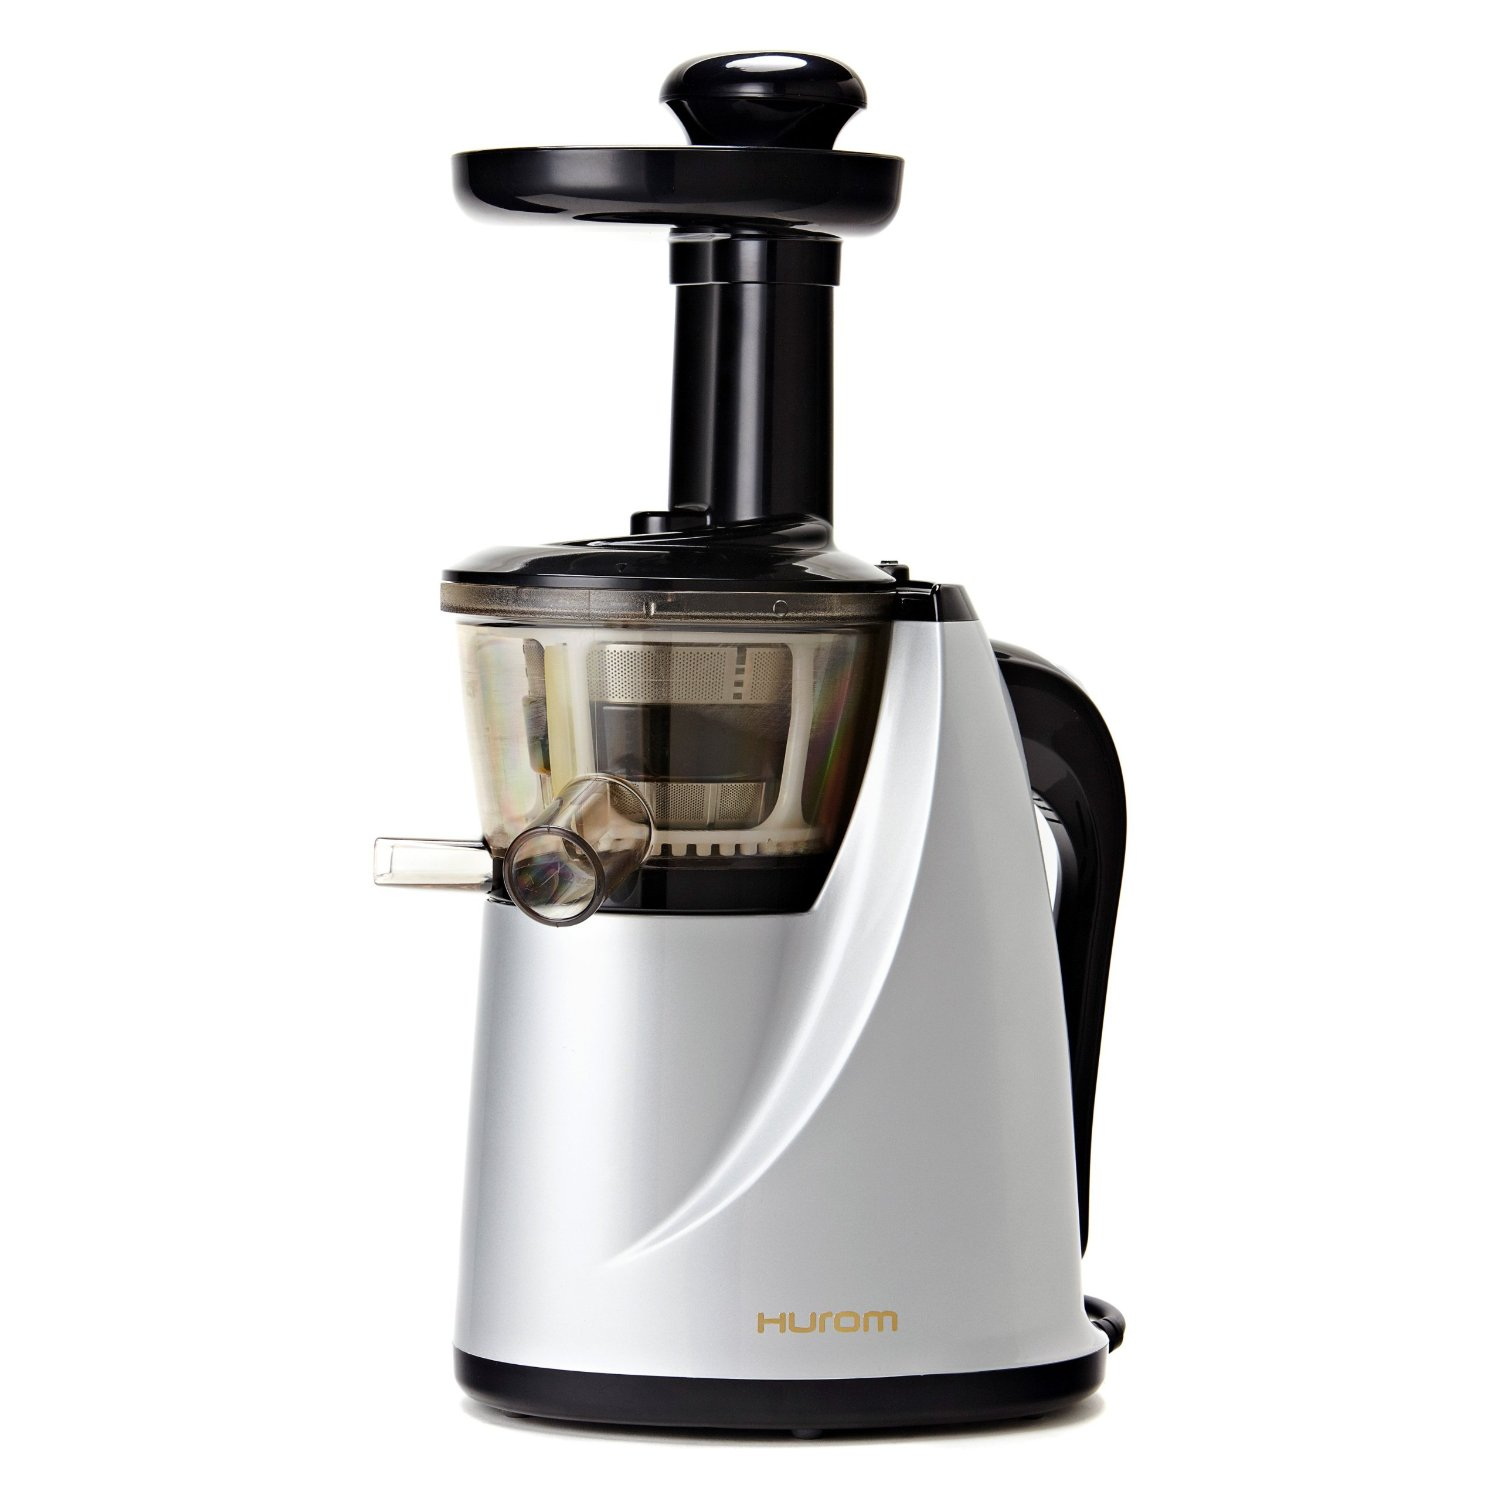 Slow Juicer Lulu : Hurom HU-100 Masticating Slow Juicer Review - Best Cold Press Juicers